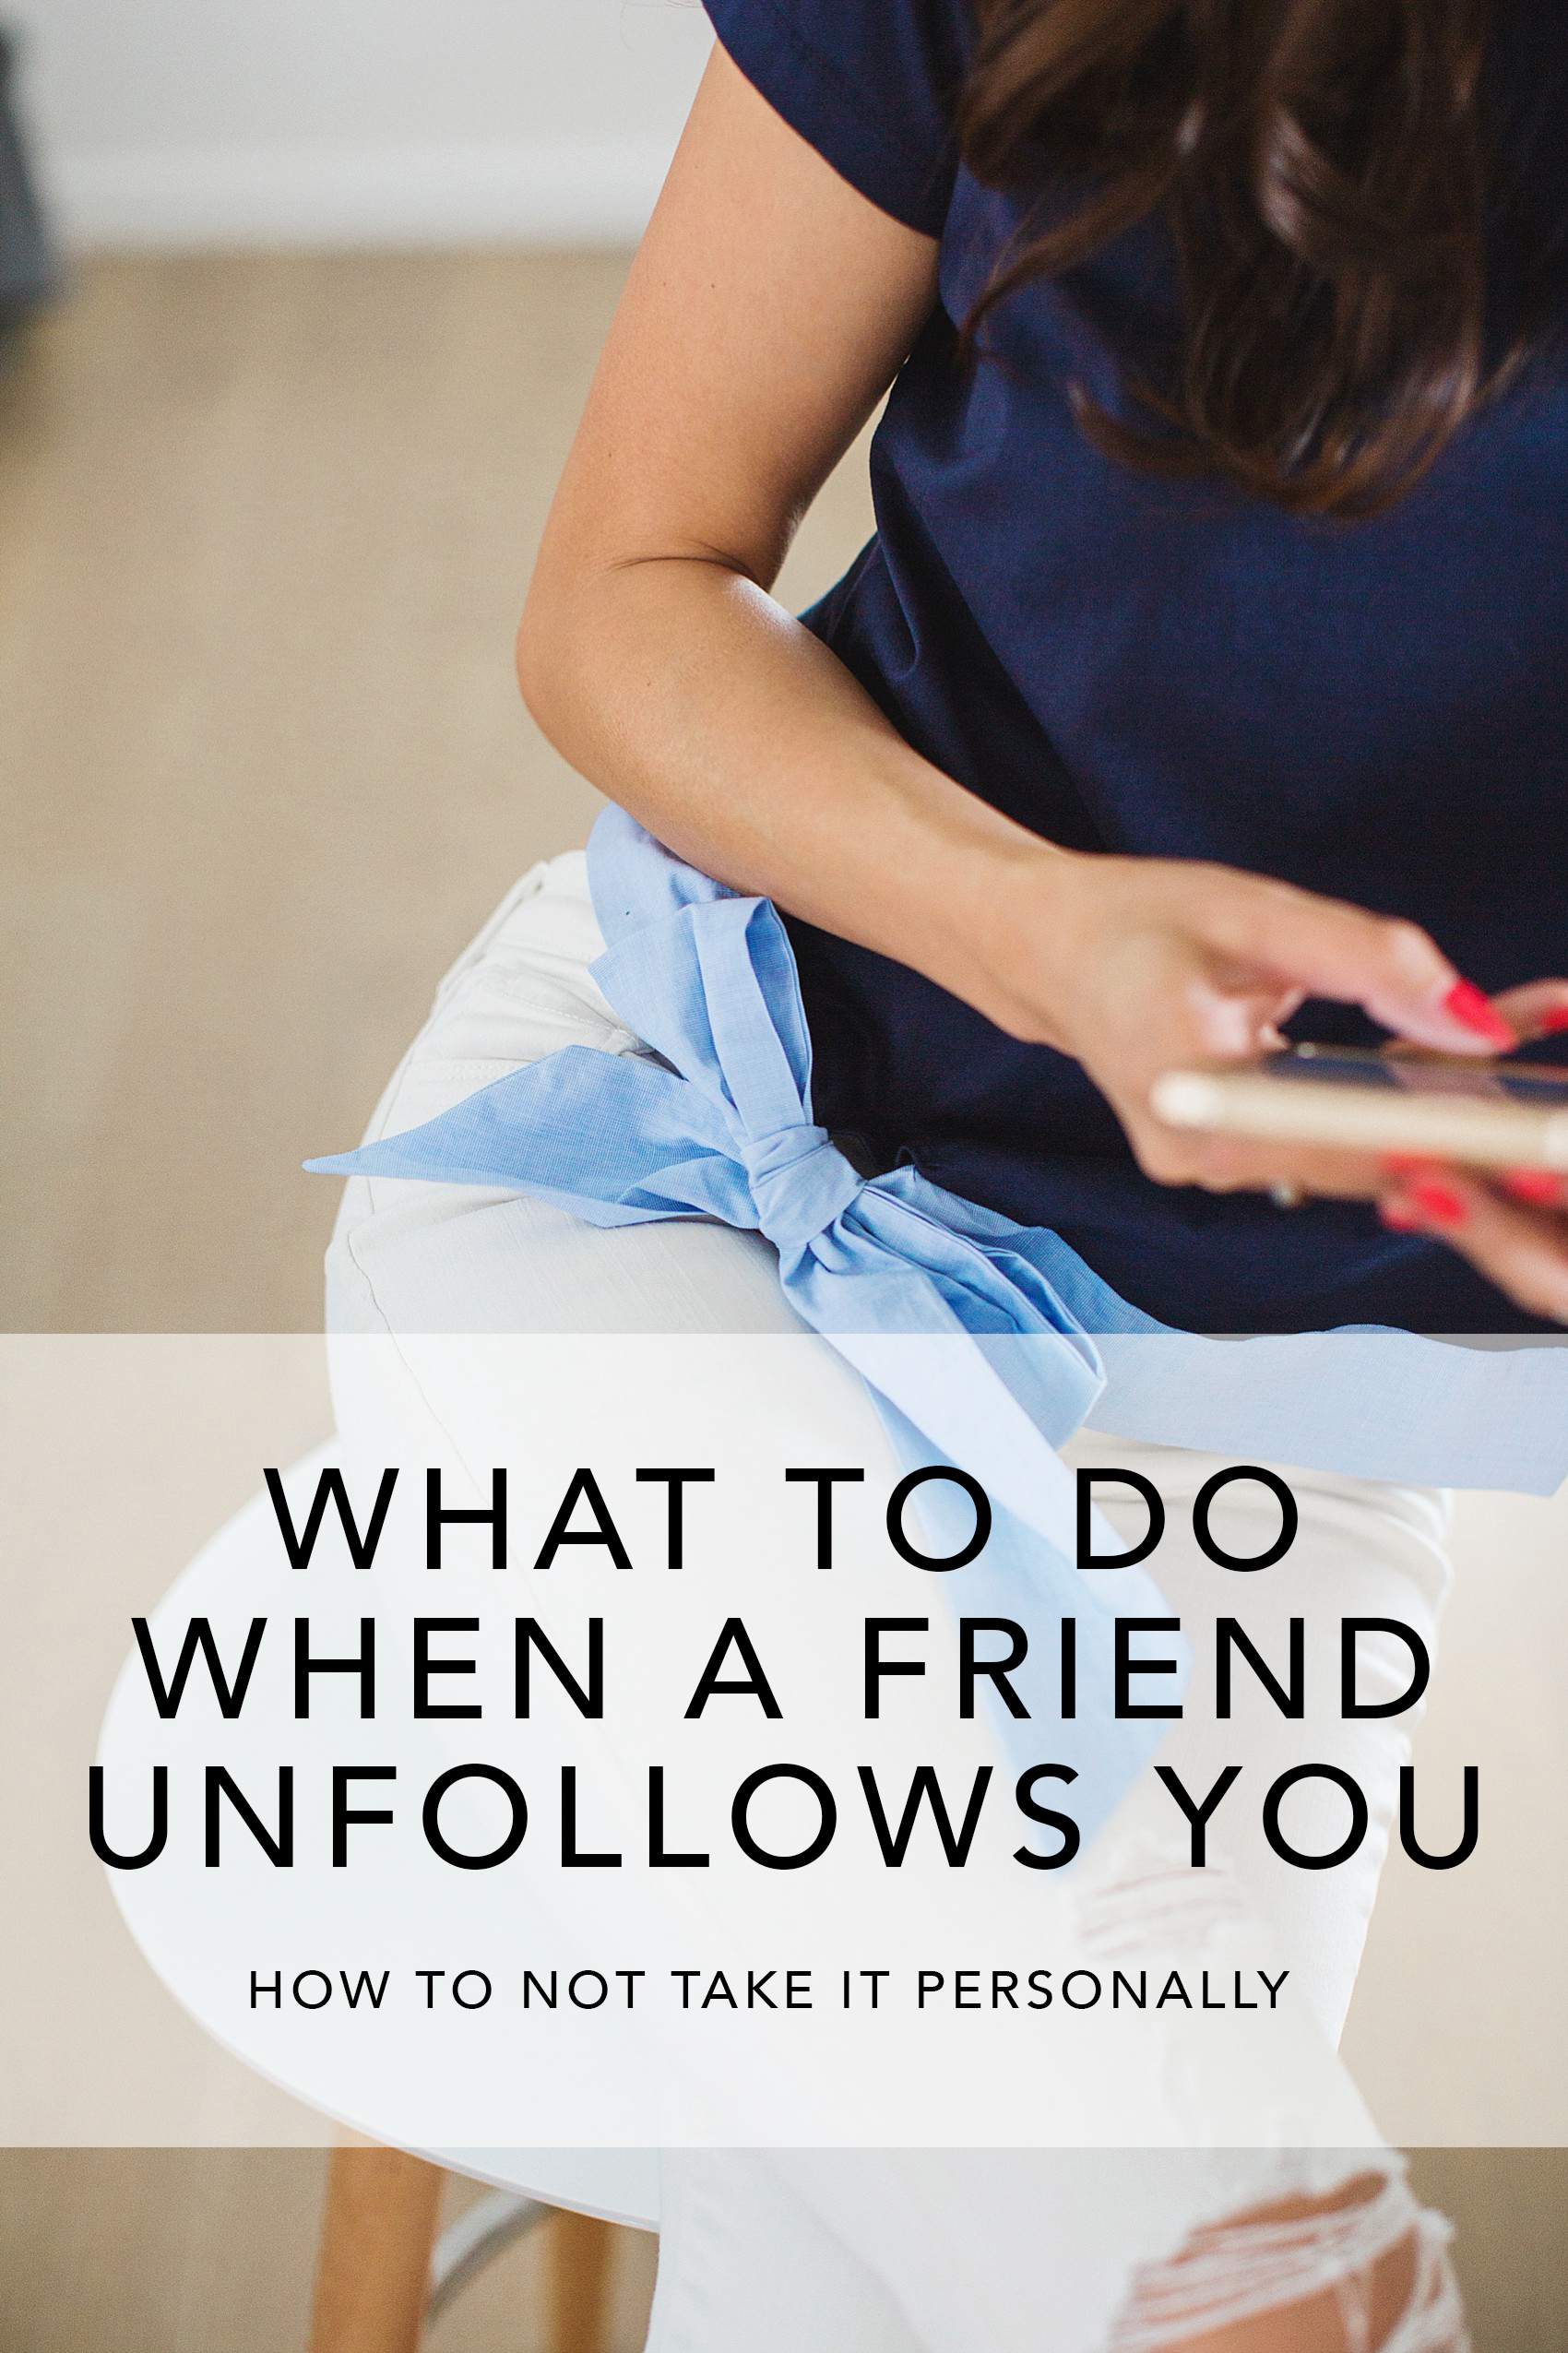 What to do when a friend unfollows you | Diana Elizabeth